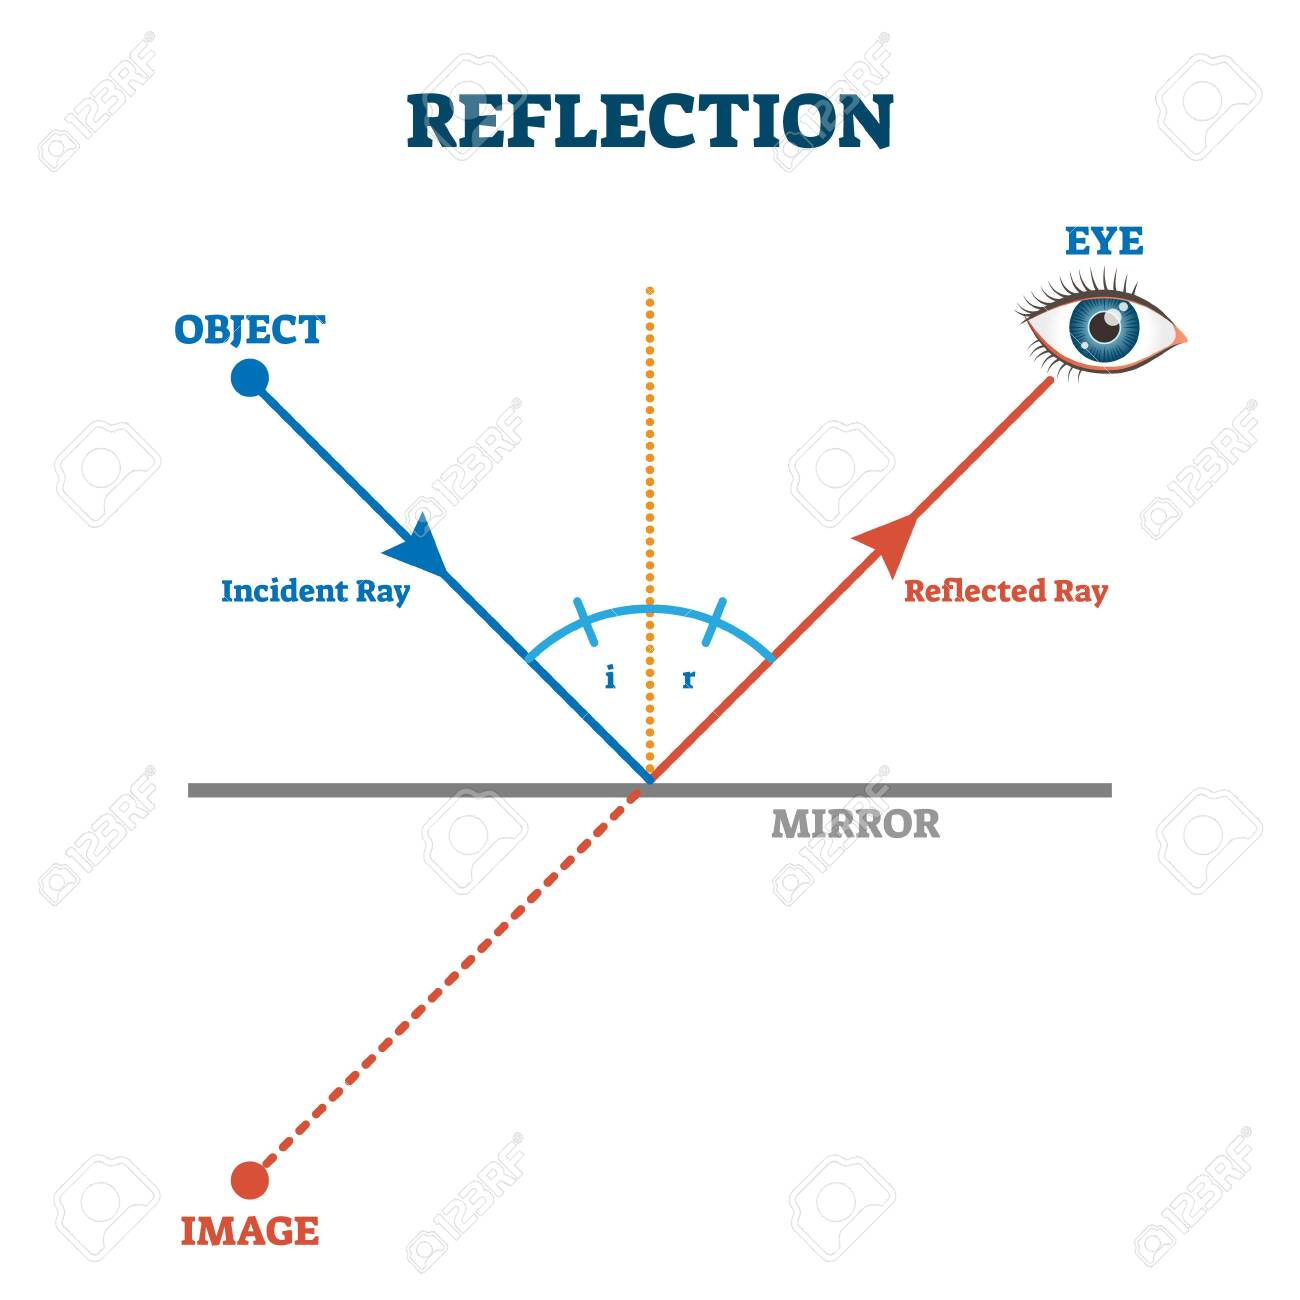 Reflection ray scheme, vector illustration diagram. Light wave physics law. Incident and reflected light ray direction example. Eye vision perception educational explanation. Simple lines and angles. - 138332597